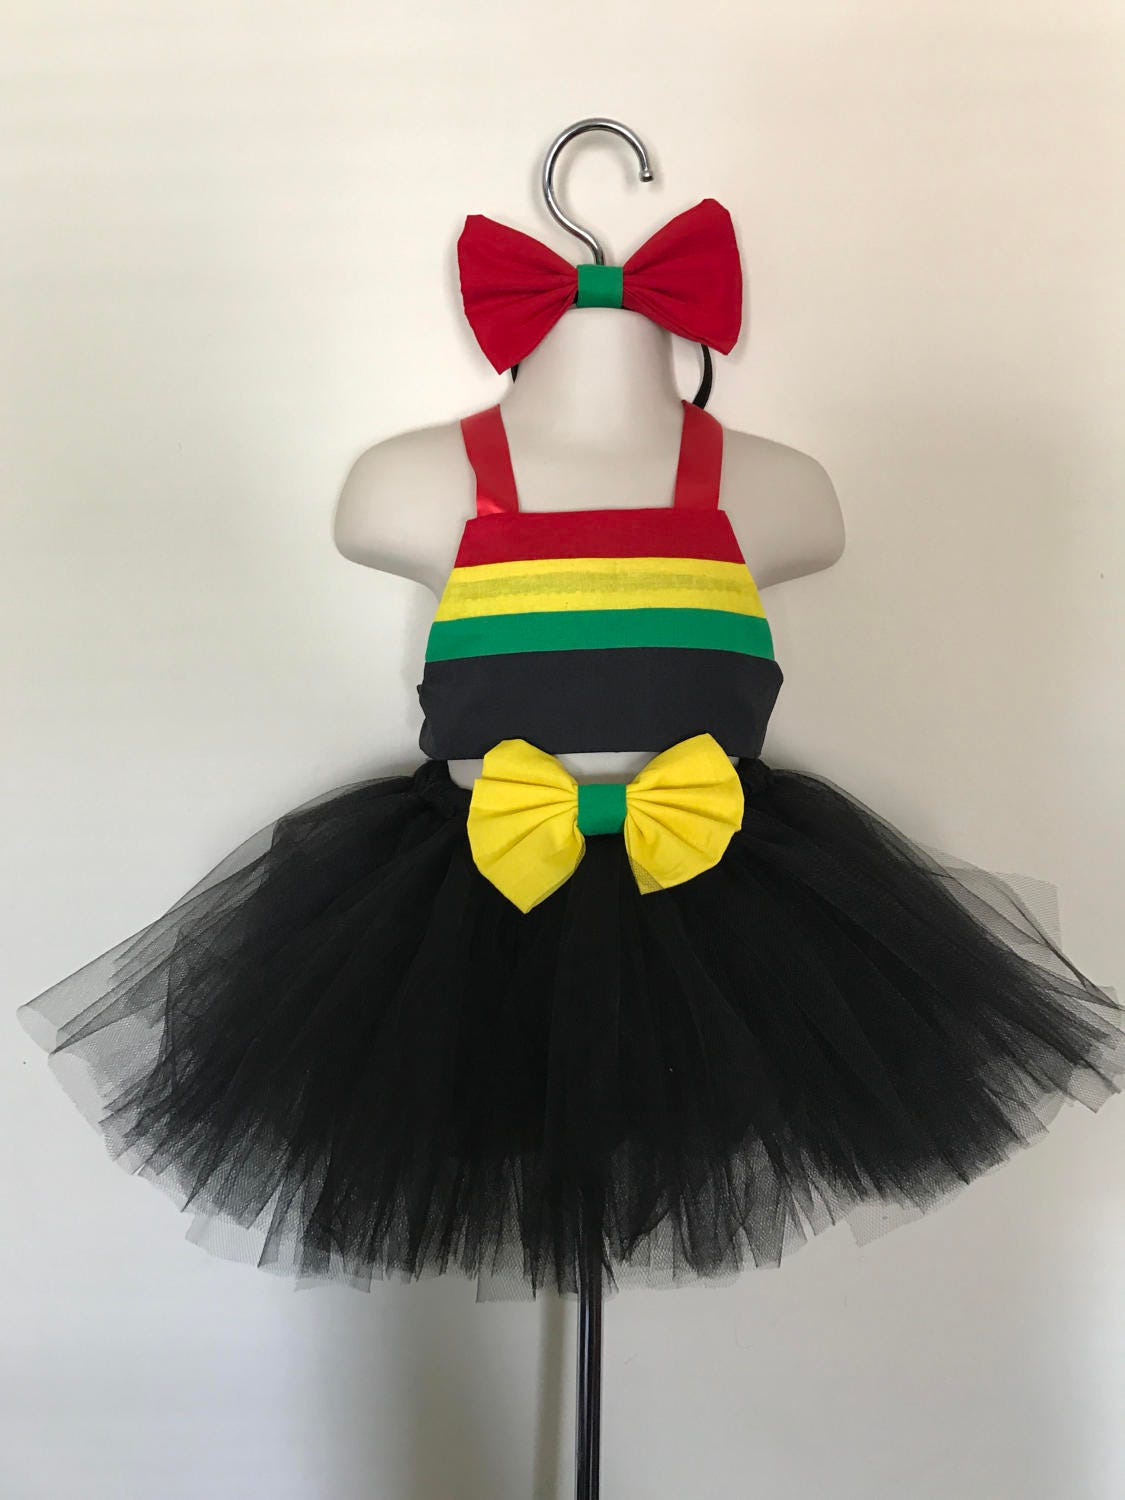 Baby cribs in ghana - Jamaican Tutu Rasta Tutu Ghana Tutu Skirt Tutu Dress Colorful Tutu Tutus Tutu Skirts Birthday Dress Girl Tutu